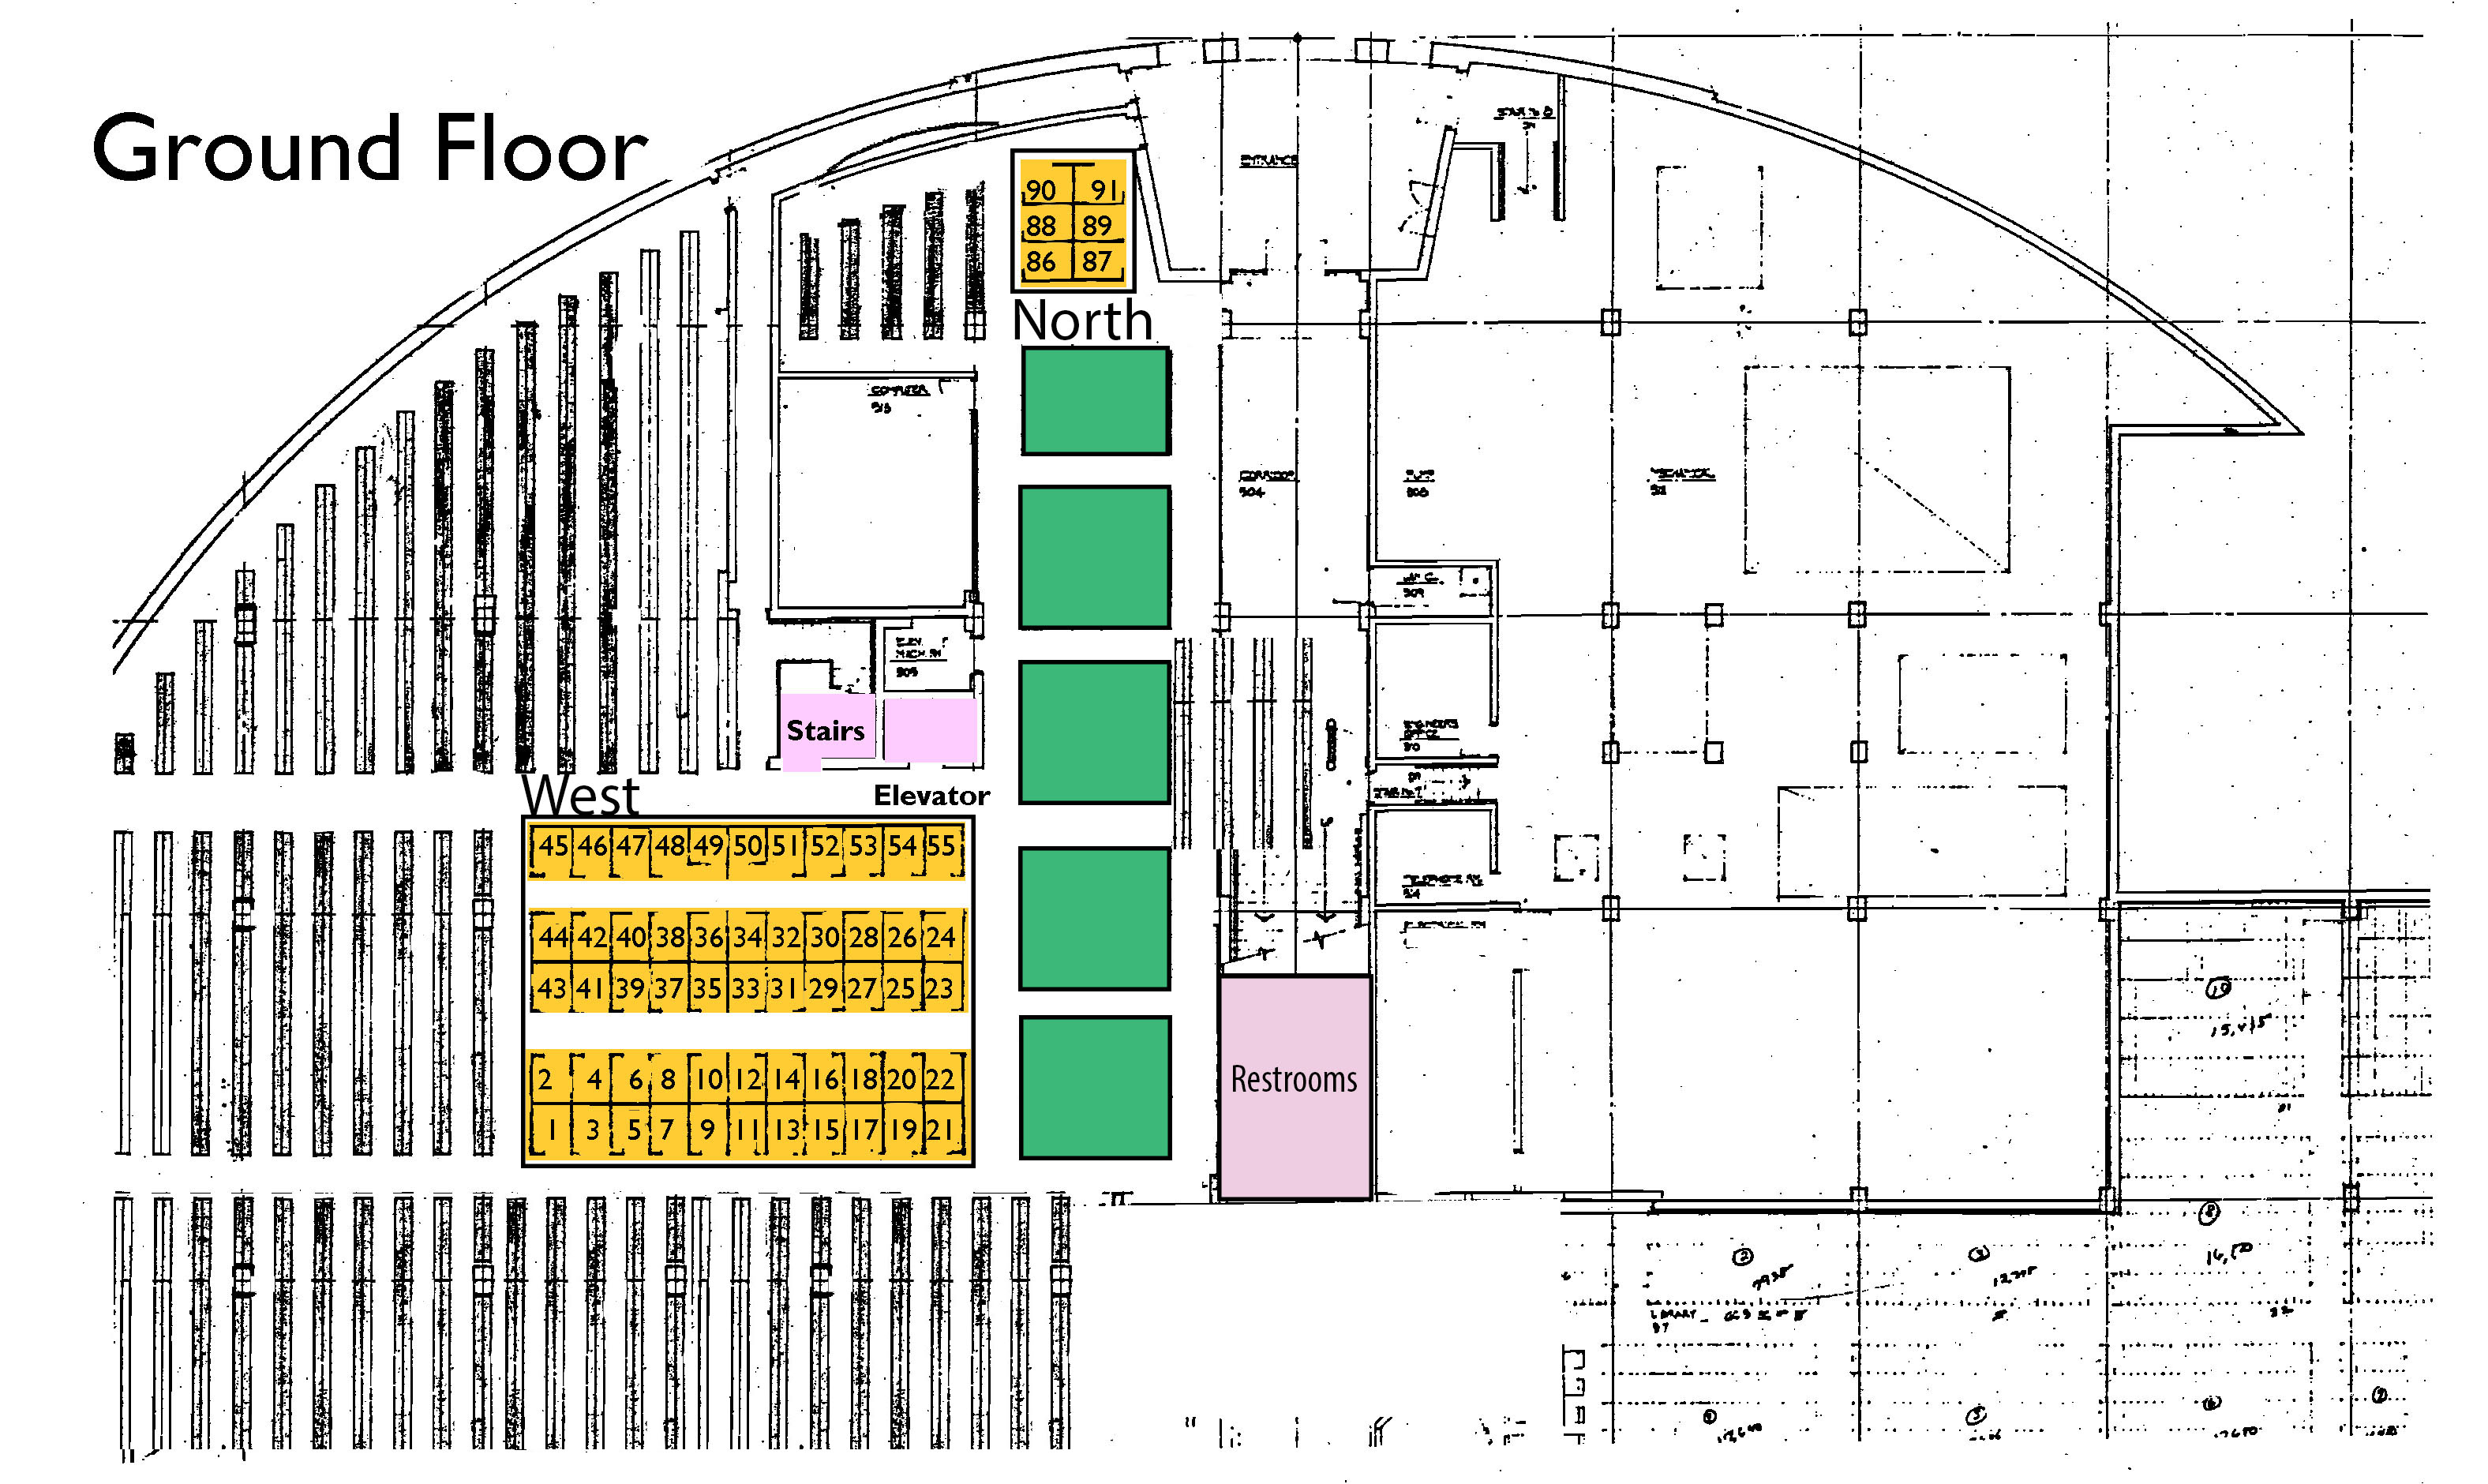 Map of Law Library ground floor student carrels